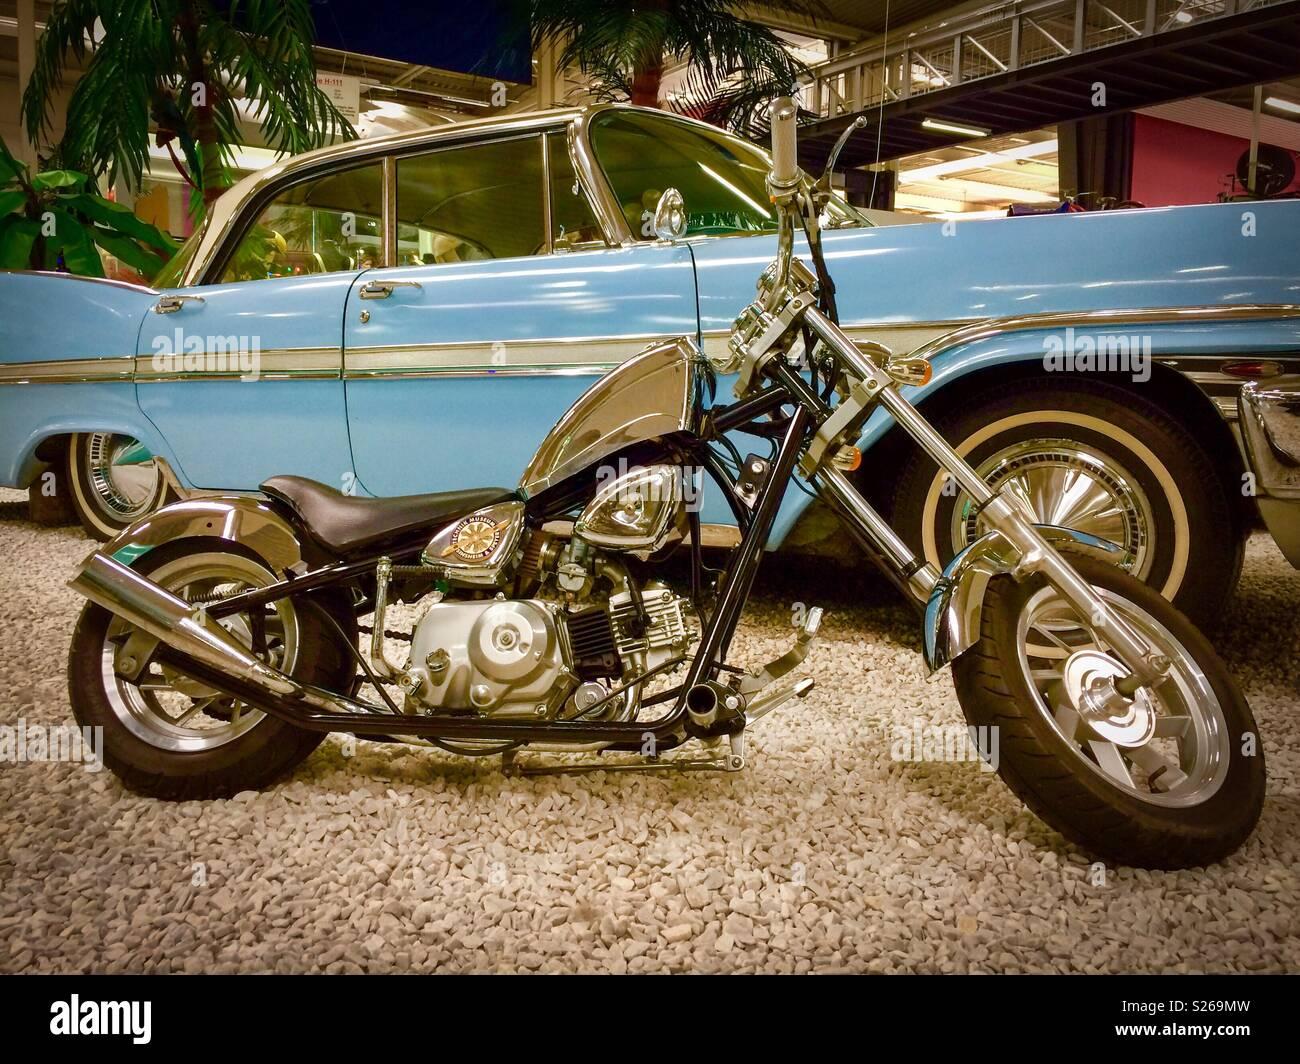 Mini Bike Stock Photos Images Alamy Old Honda Bikes Image